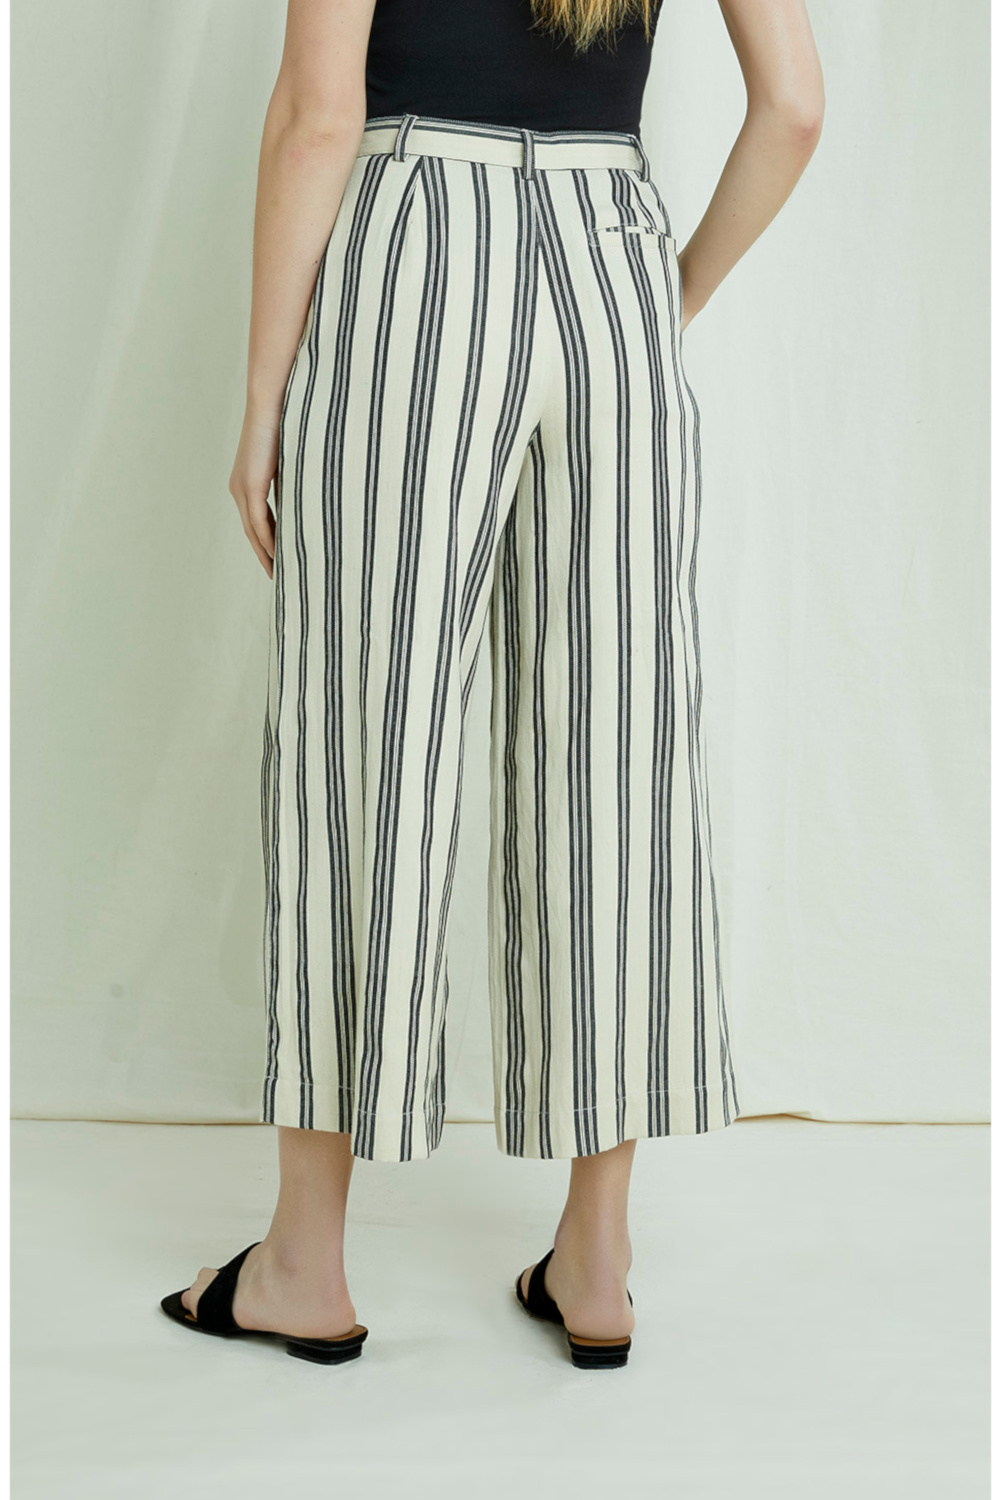 Peopletree Culotte Shauna Striped 1